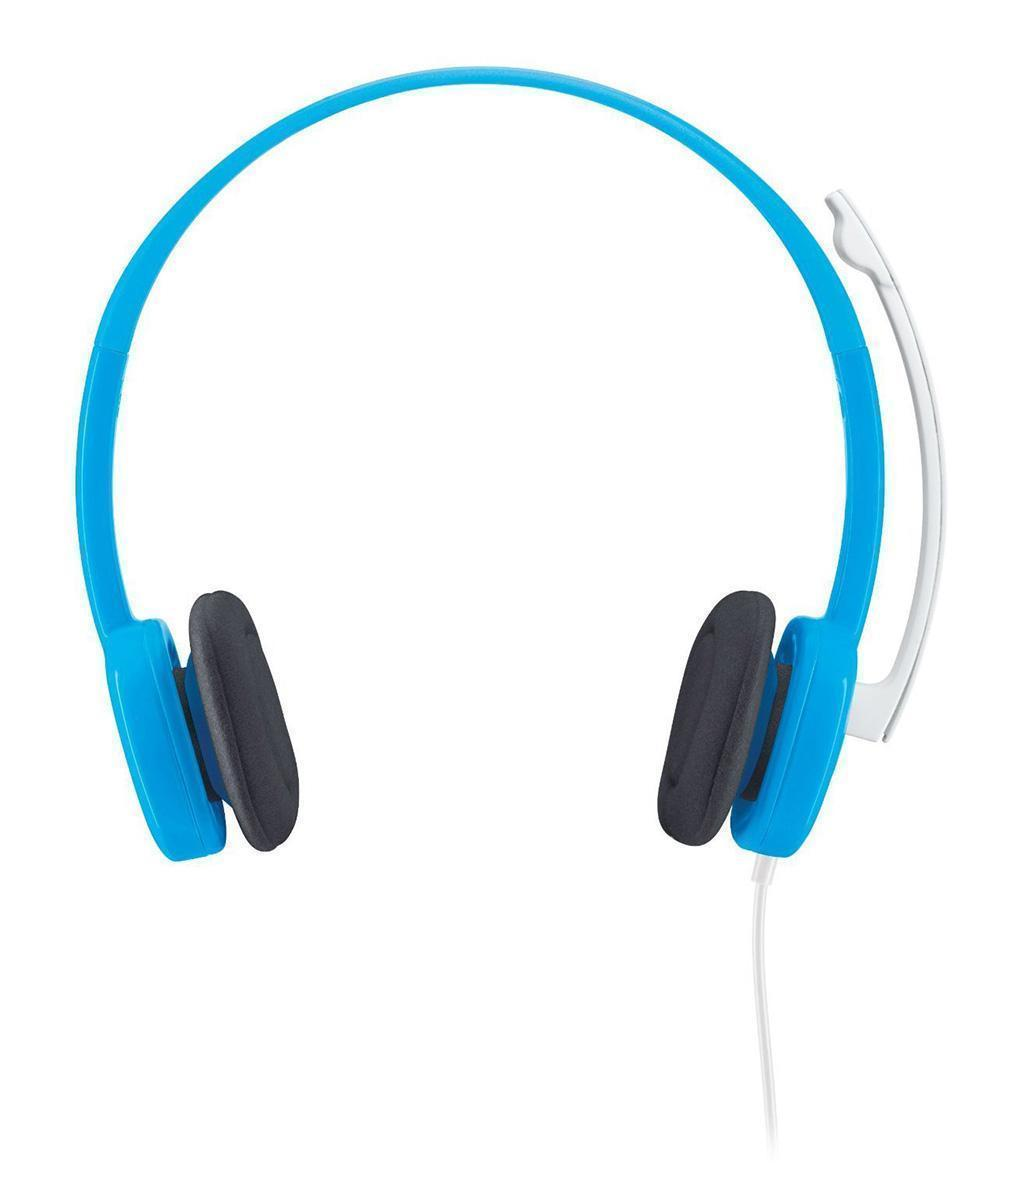 все цены на Logitech Stereo Headset H150, Blueberry (981-000368)